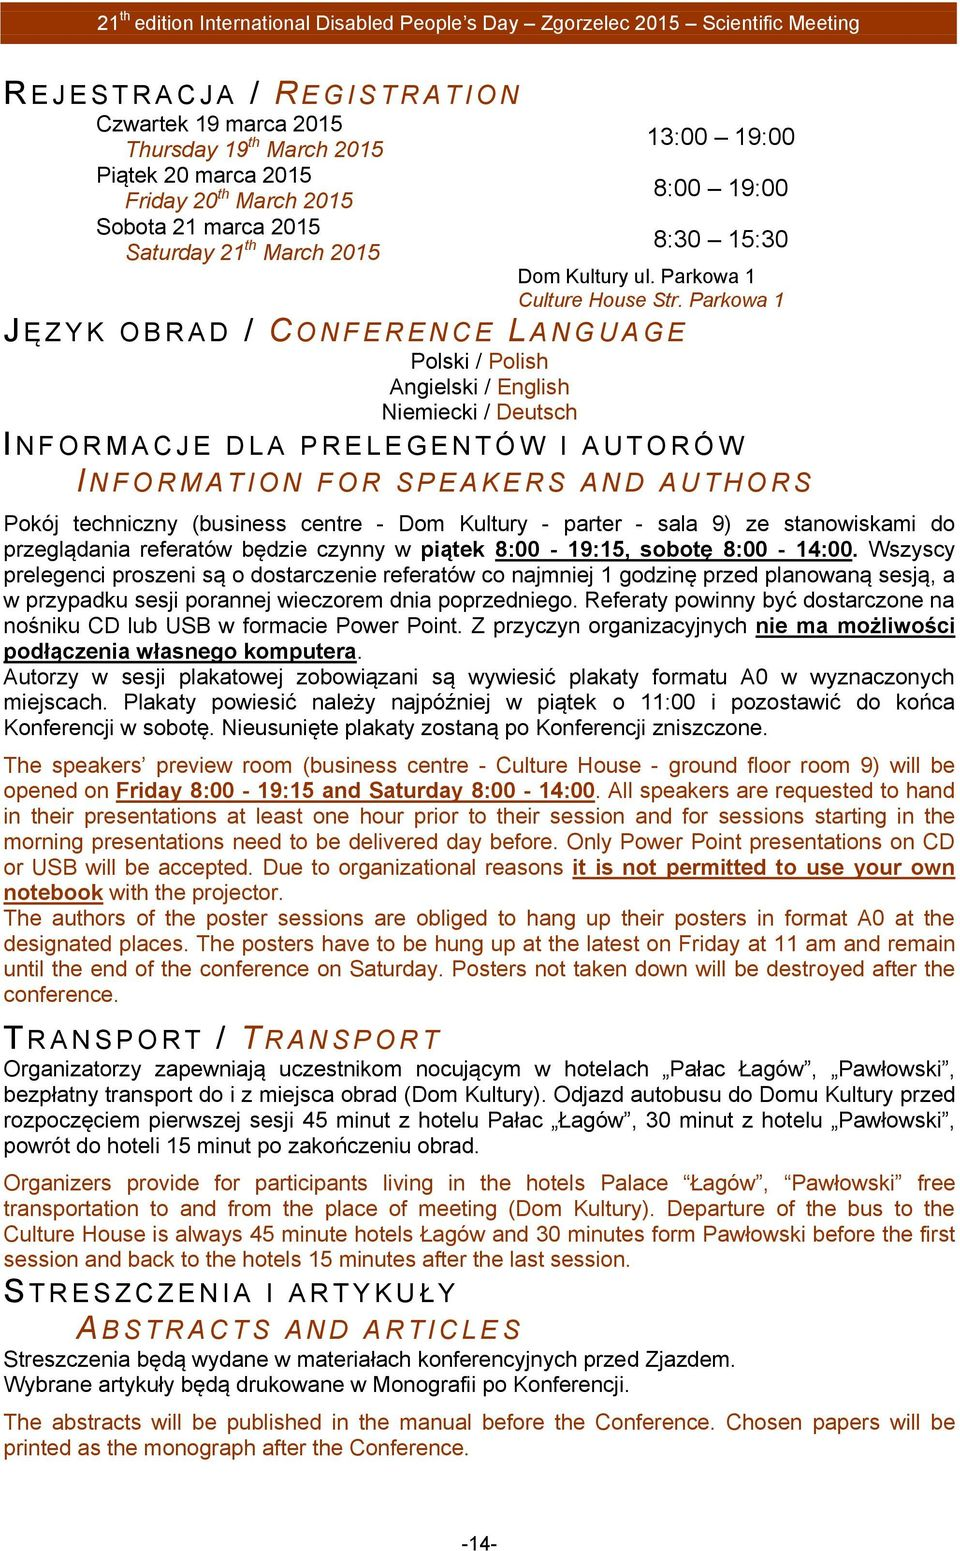 Parkowa 1 J Ę Z Y K O B R A D / CONFERENCE LANGUAGE Polski / Polish Angielski / English Niemiecki / Deutsch I NFORMACJE DLA PRELEGE N T Ó W I A U T O R Ó W I NFORMATION FOR SPEAKERS AND A U T H O R S